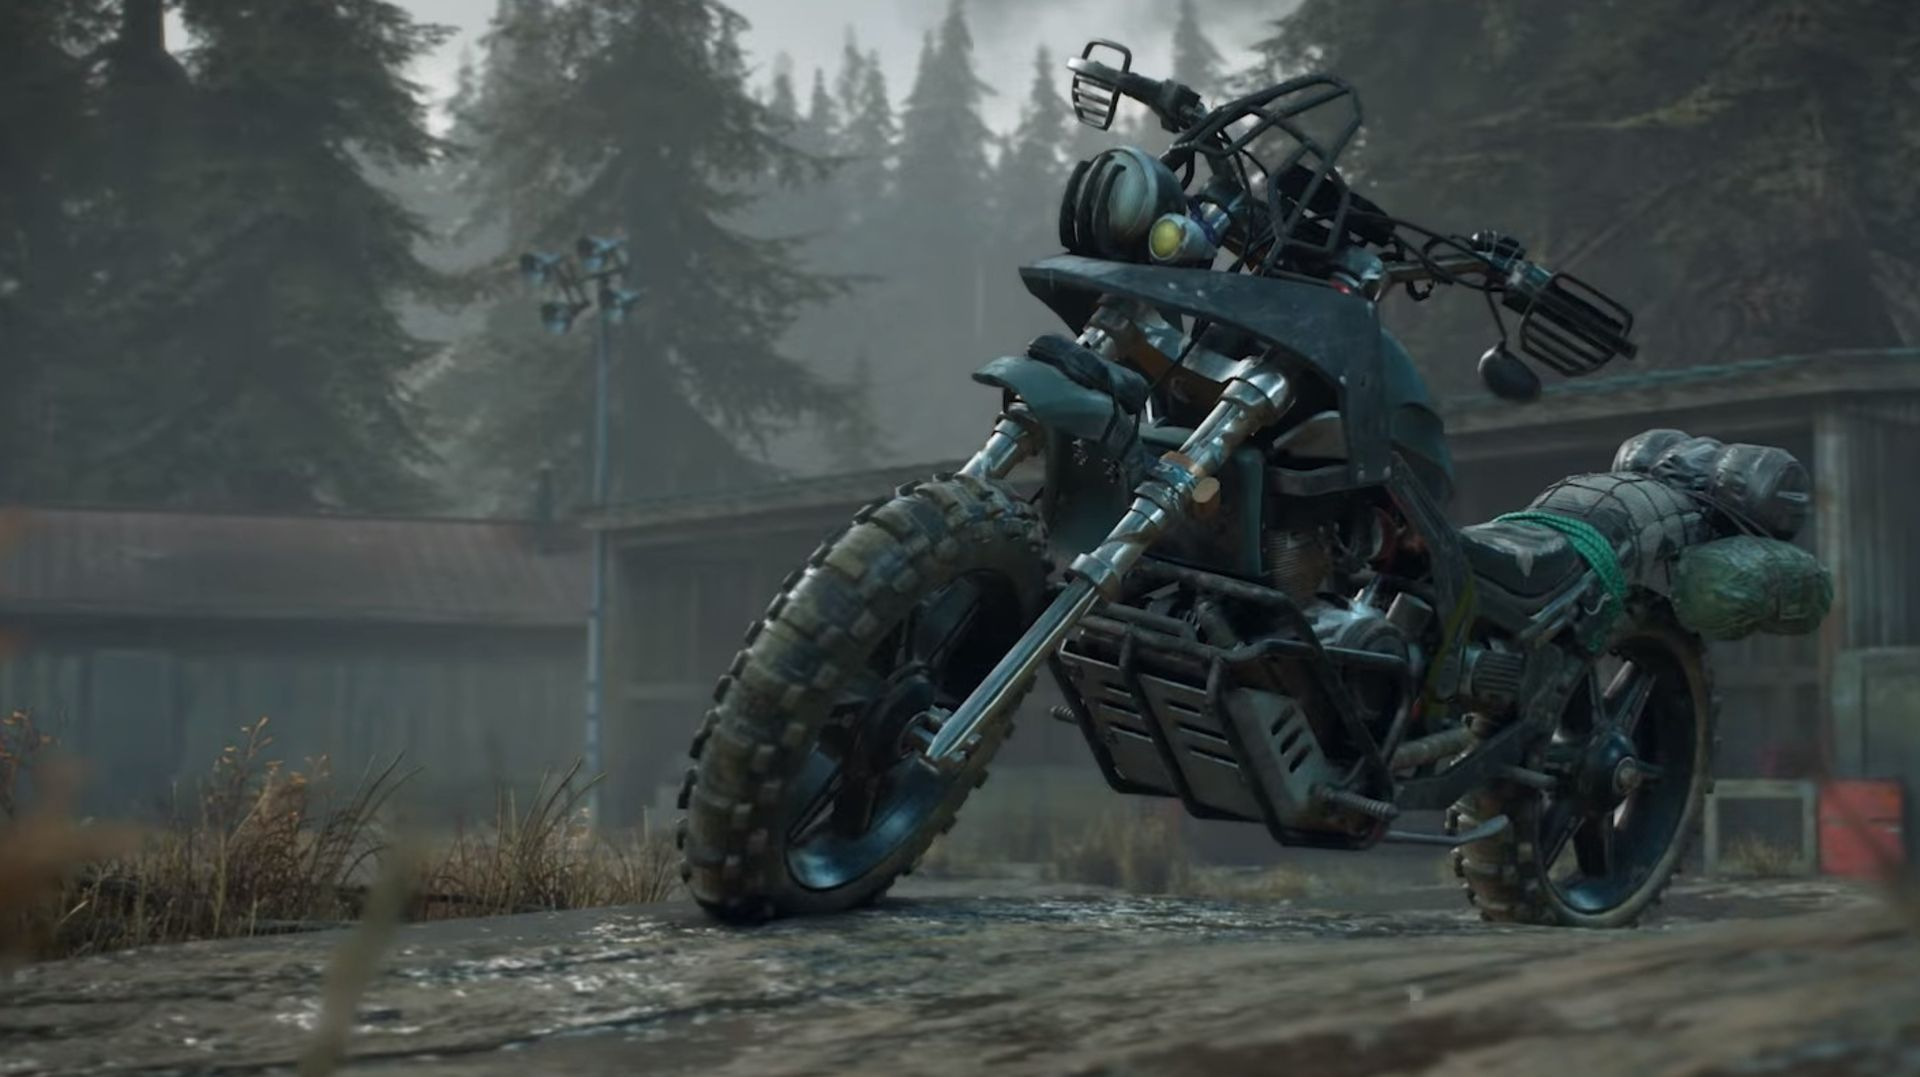 days gone moto critica analise review